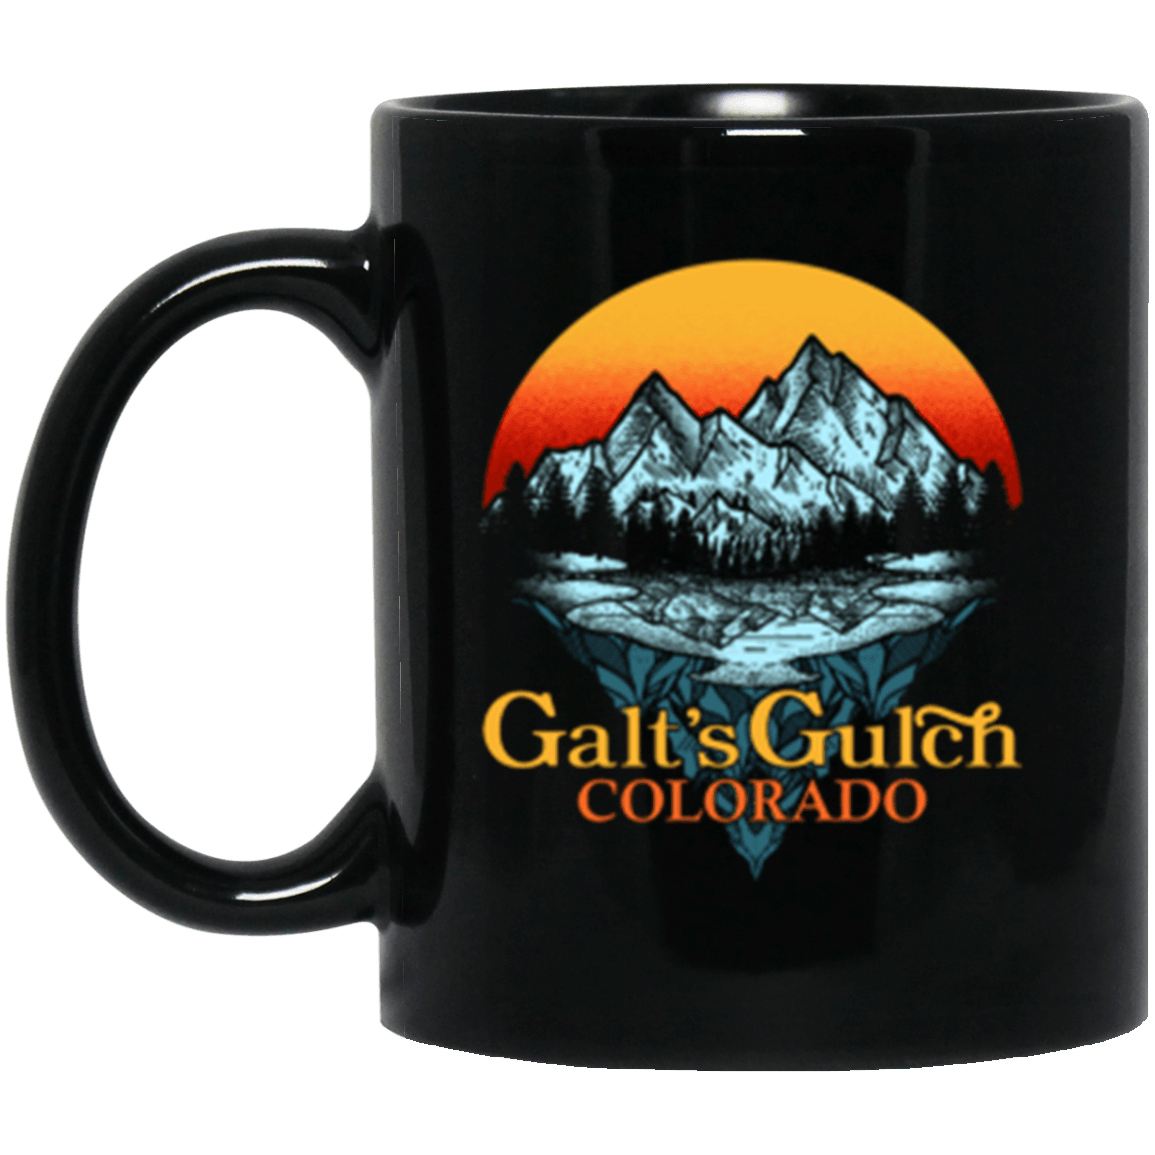 Galt's Gulch Black Mug 11oz (2-sided)